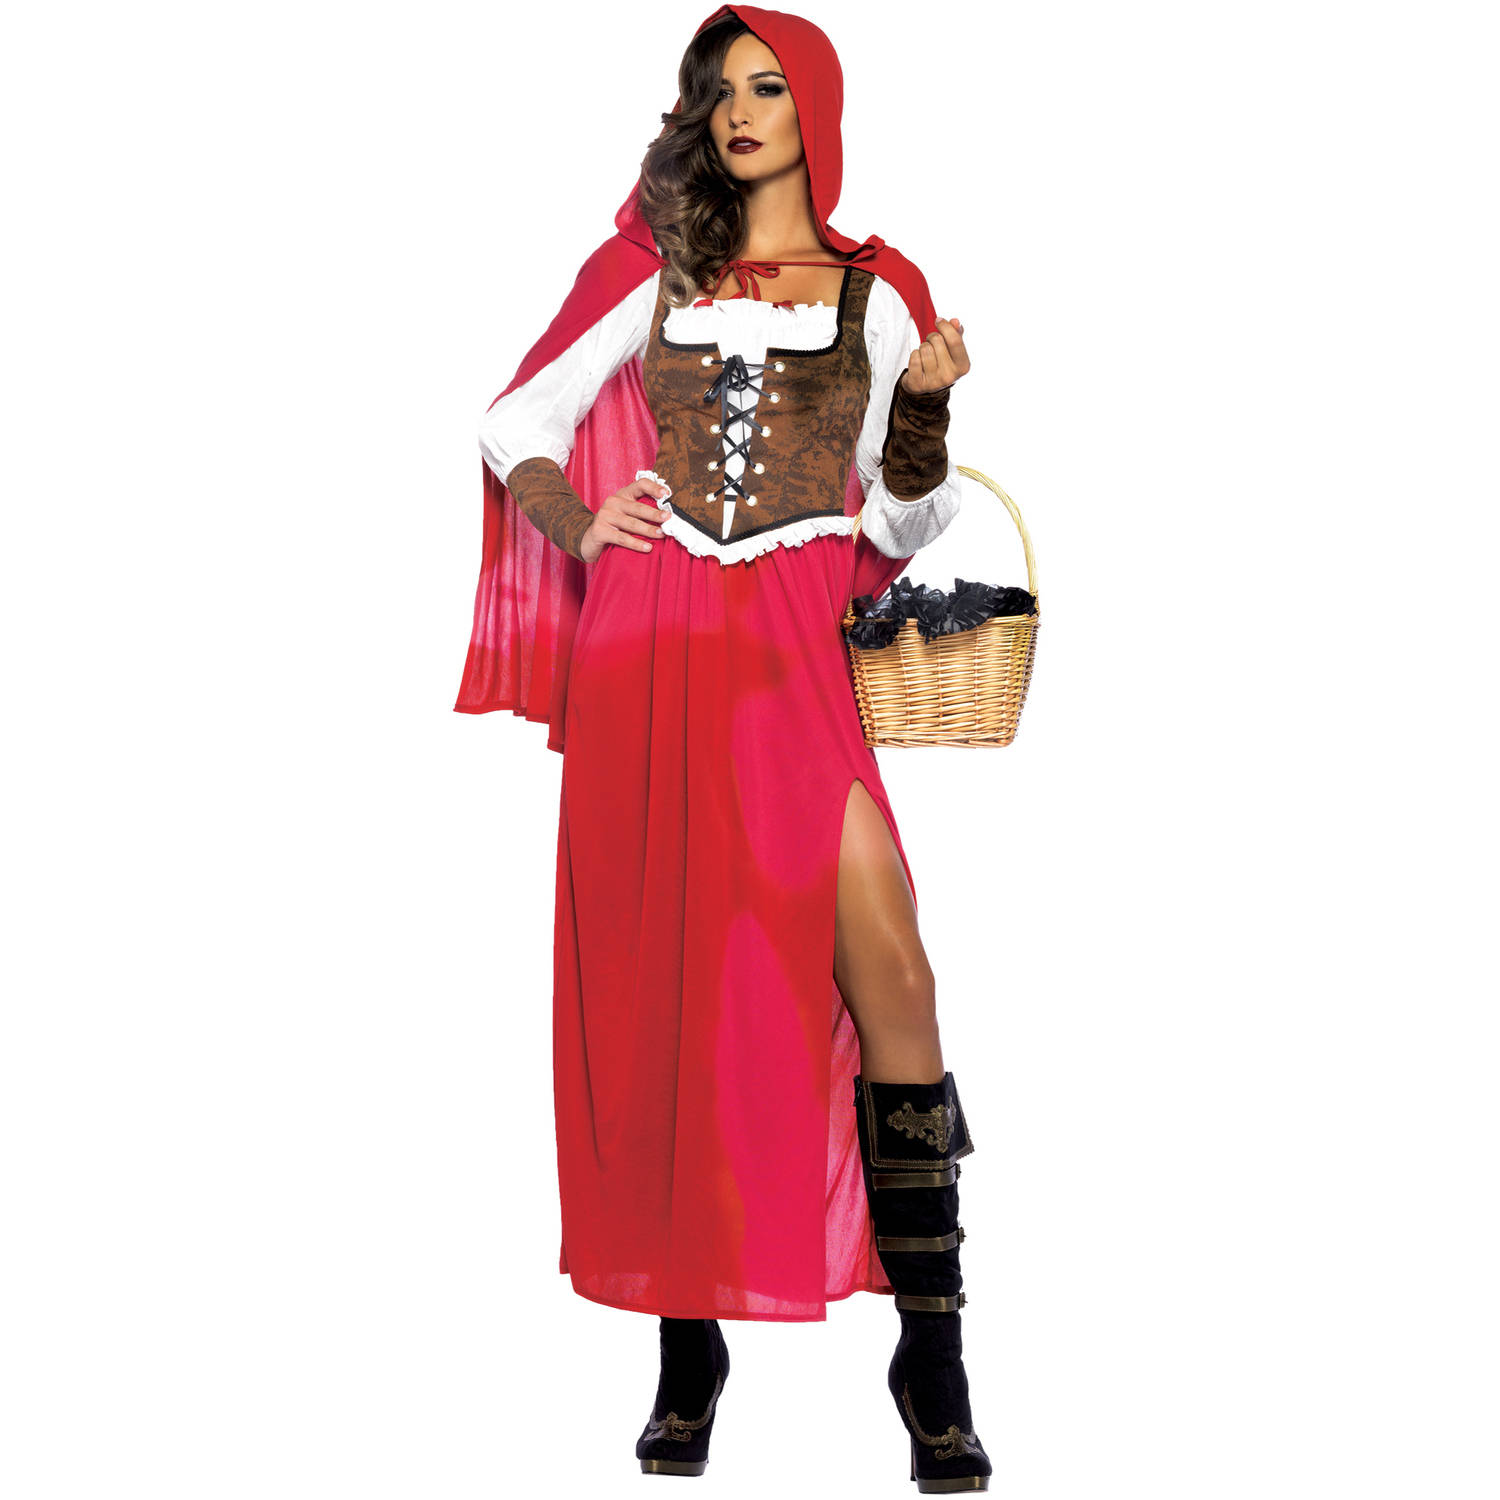 Leg Avenue Women\u002639;s PlusSize Woodland Red Riding Hood Costume, Red, 3X  Walmart.com